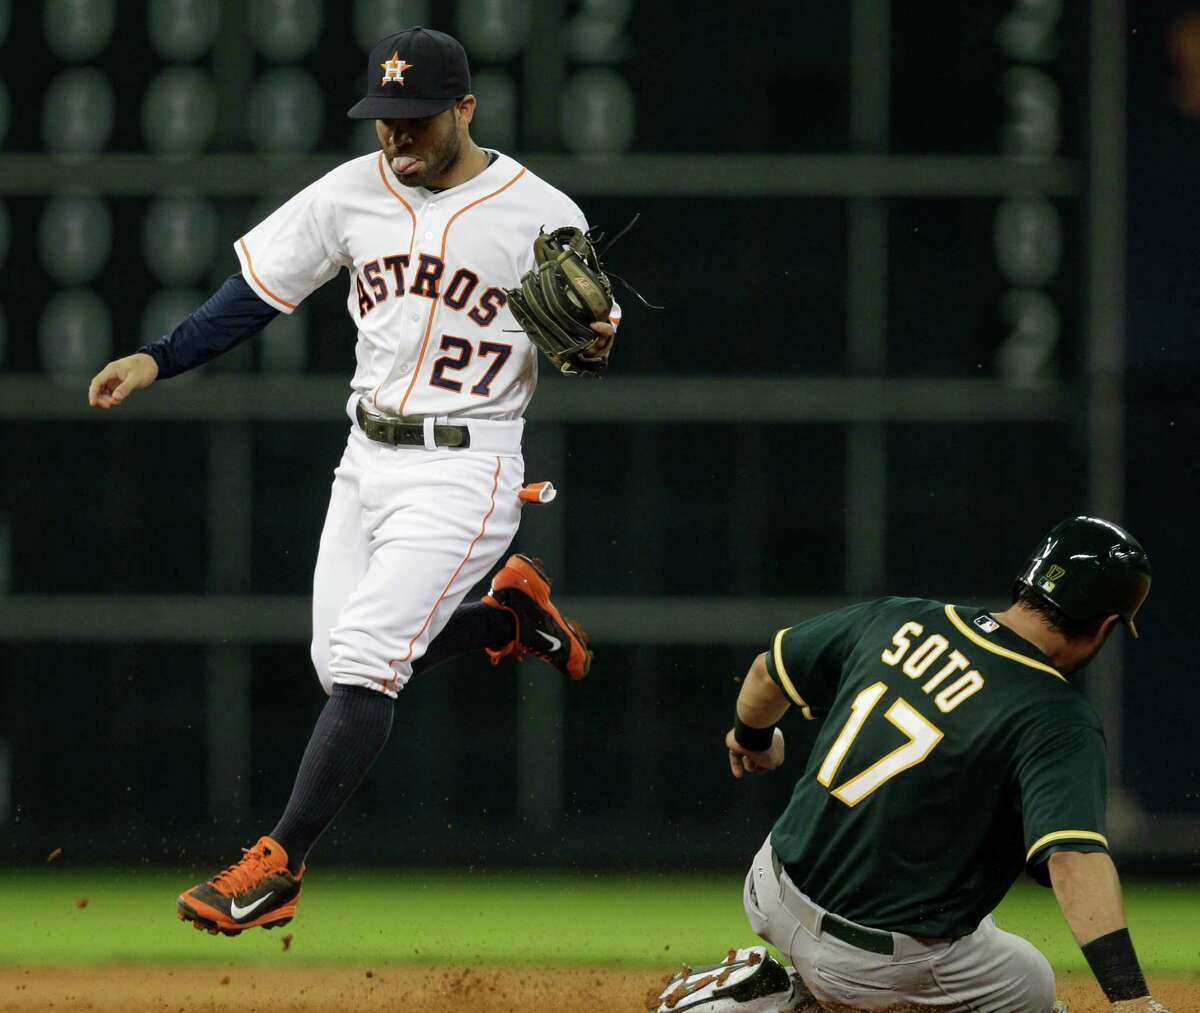 Houston Astros second baseman Jose Altuve leaps after making an out at second base against Oakland Athletics Geovany Soto during the fourth inning at Minute Maid Park Tuesday, Aug. 26, 2014, in Houston. ( Melissa Phillip / Houston Chronicle )